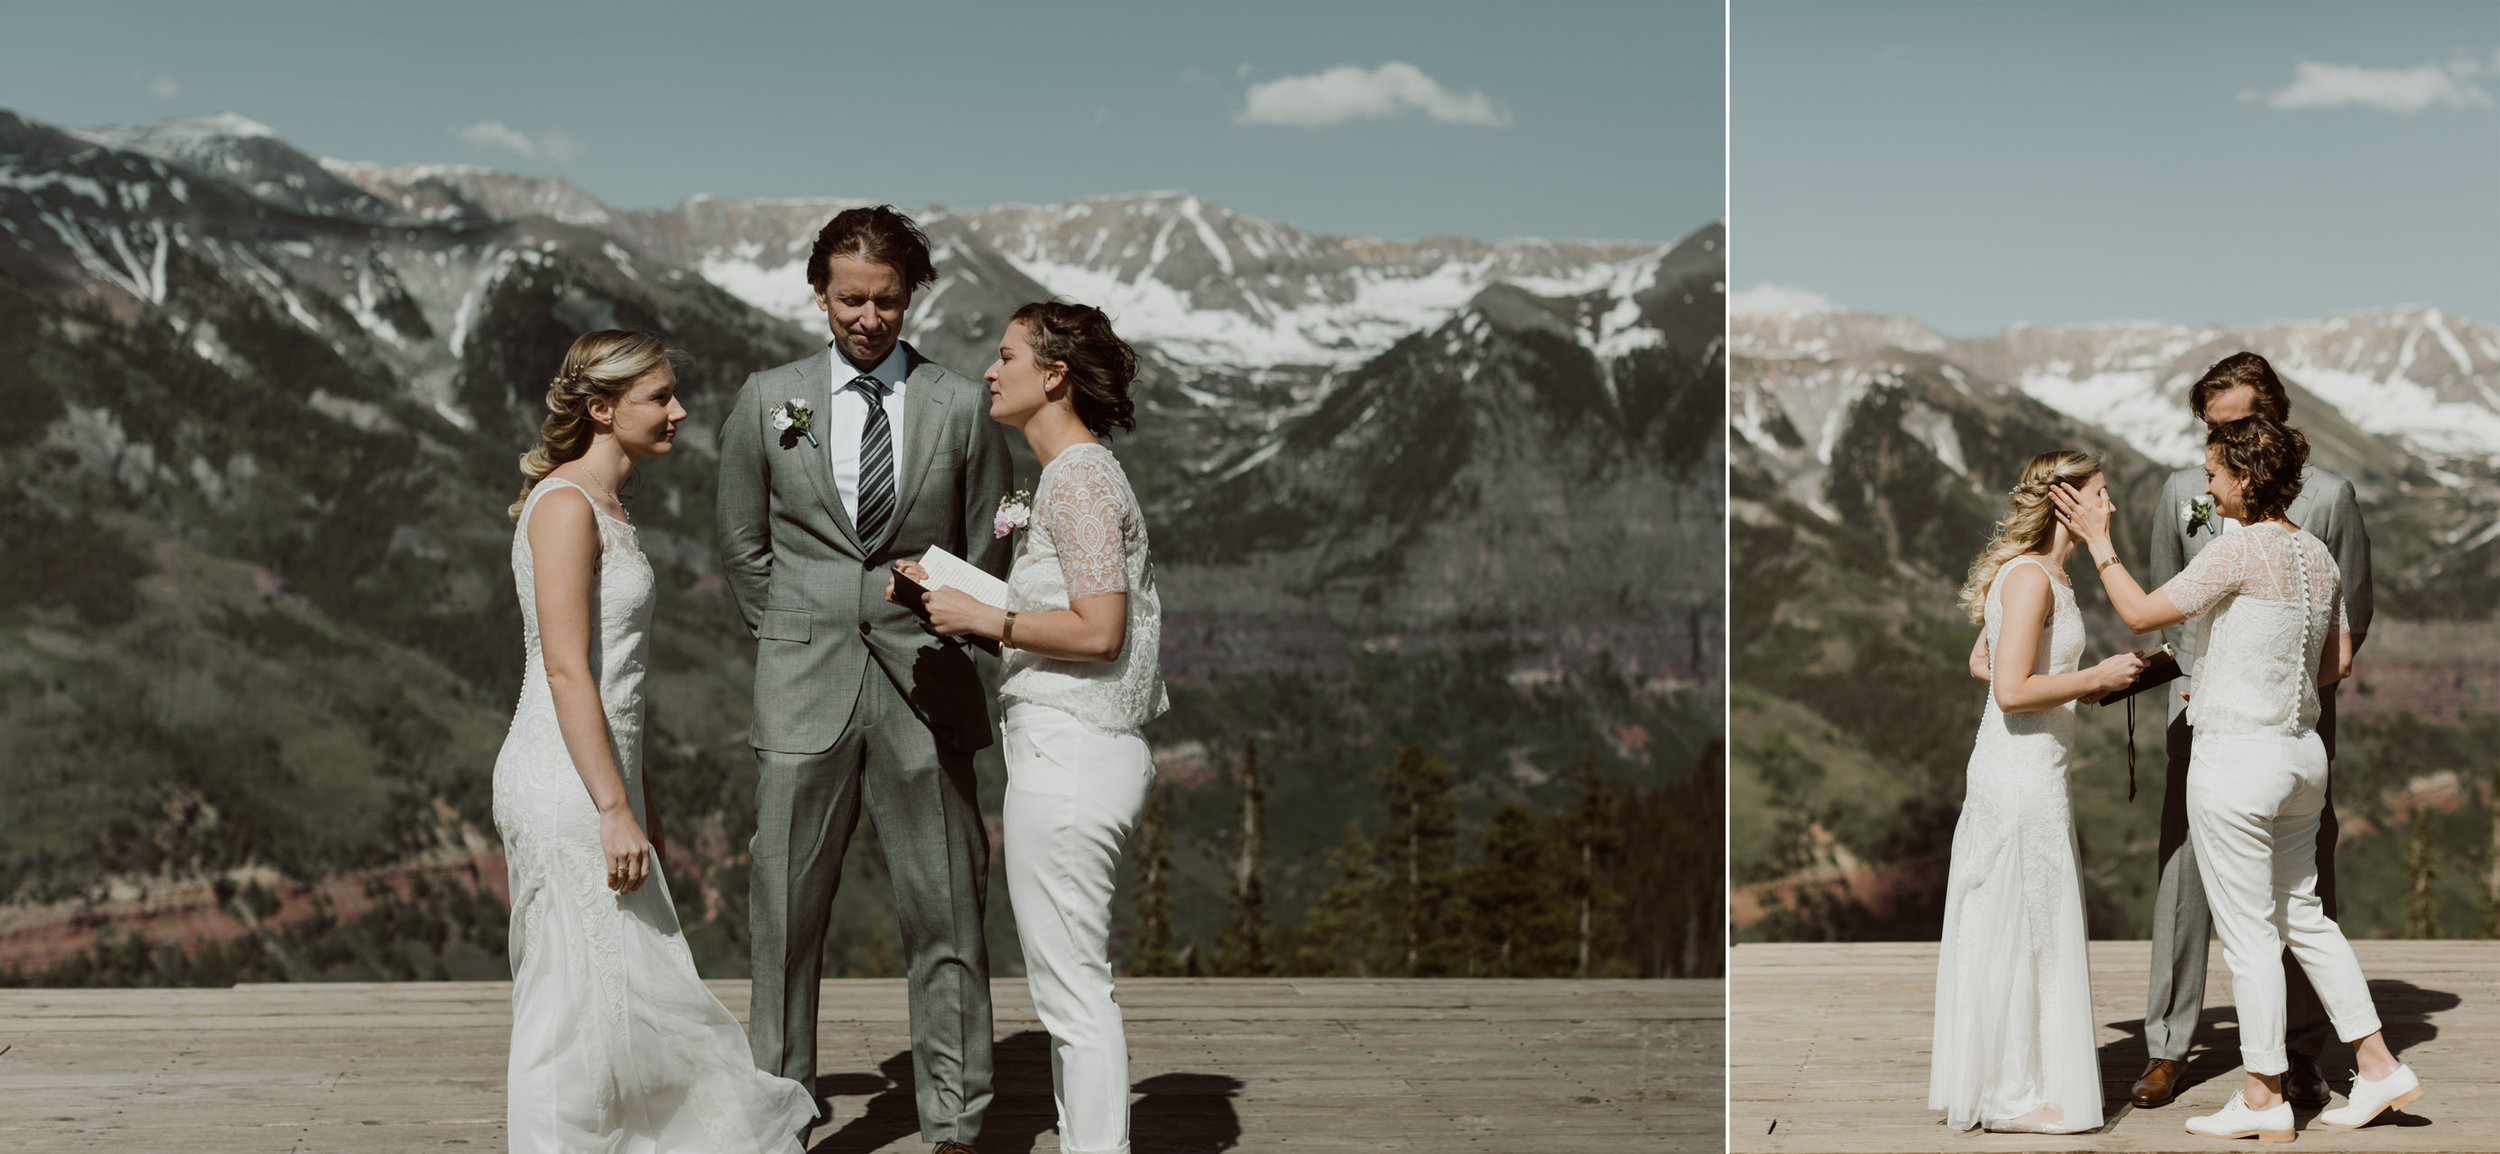 cedarandpines-intimate-san-sofia-telluride-colorado-wedding_PS3.jpg